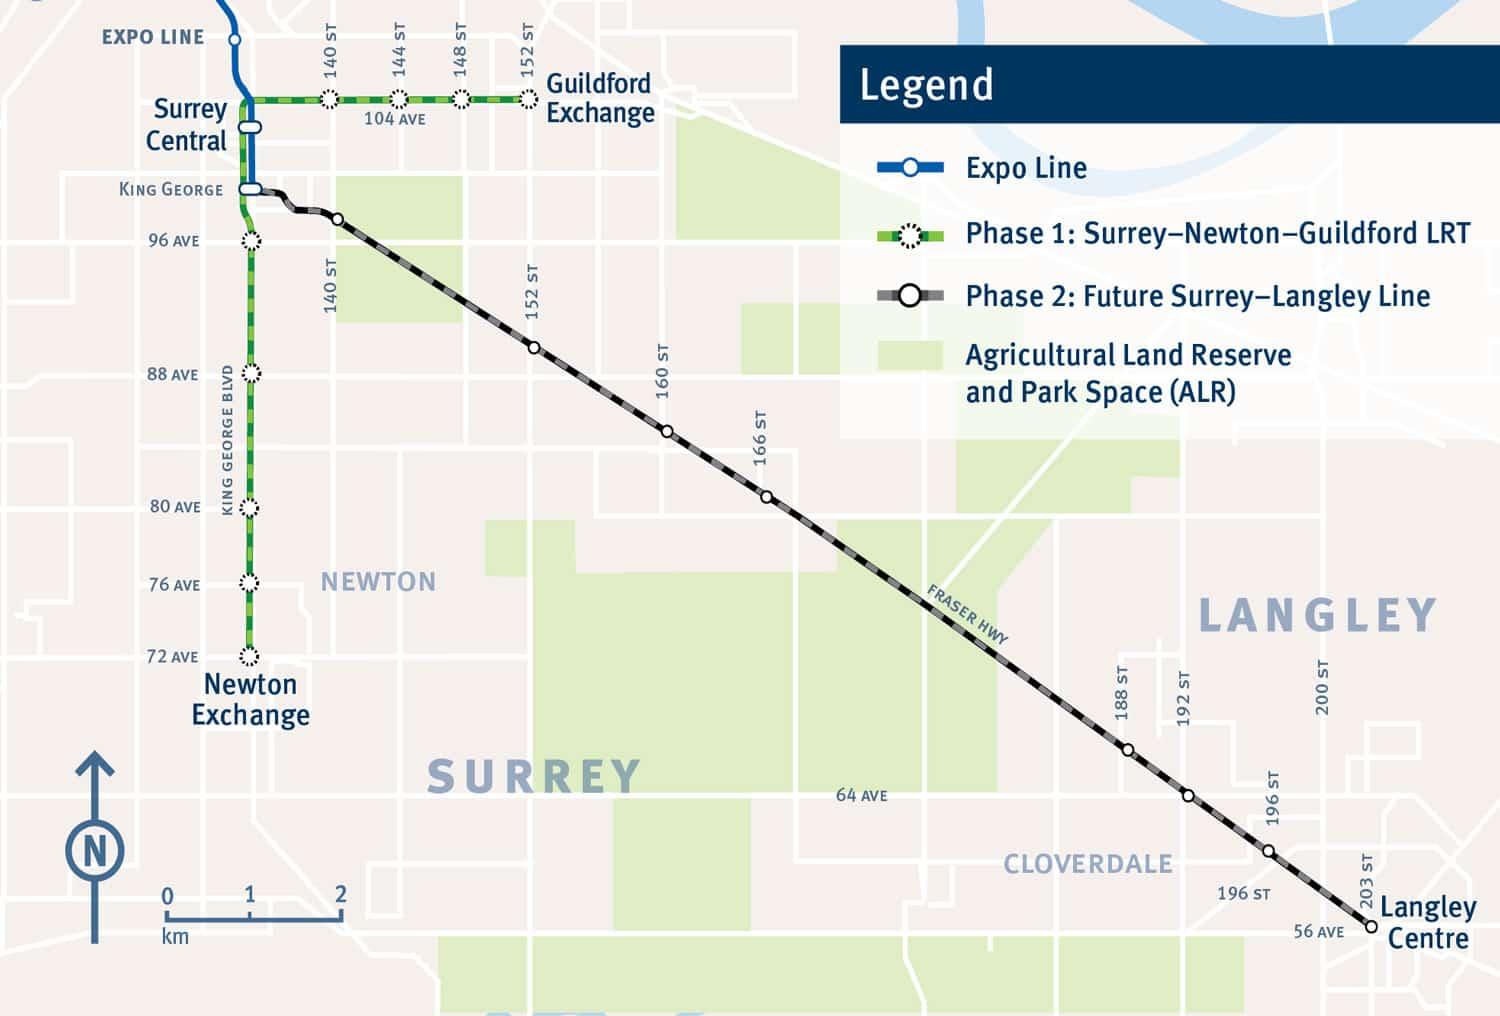 The planned LRT expansion to Langley